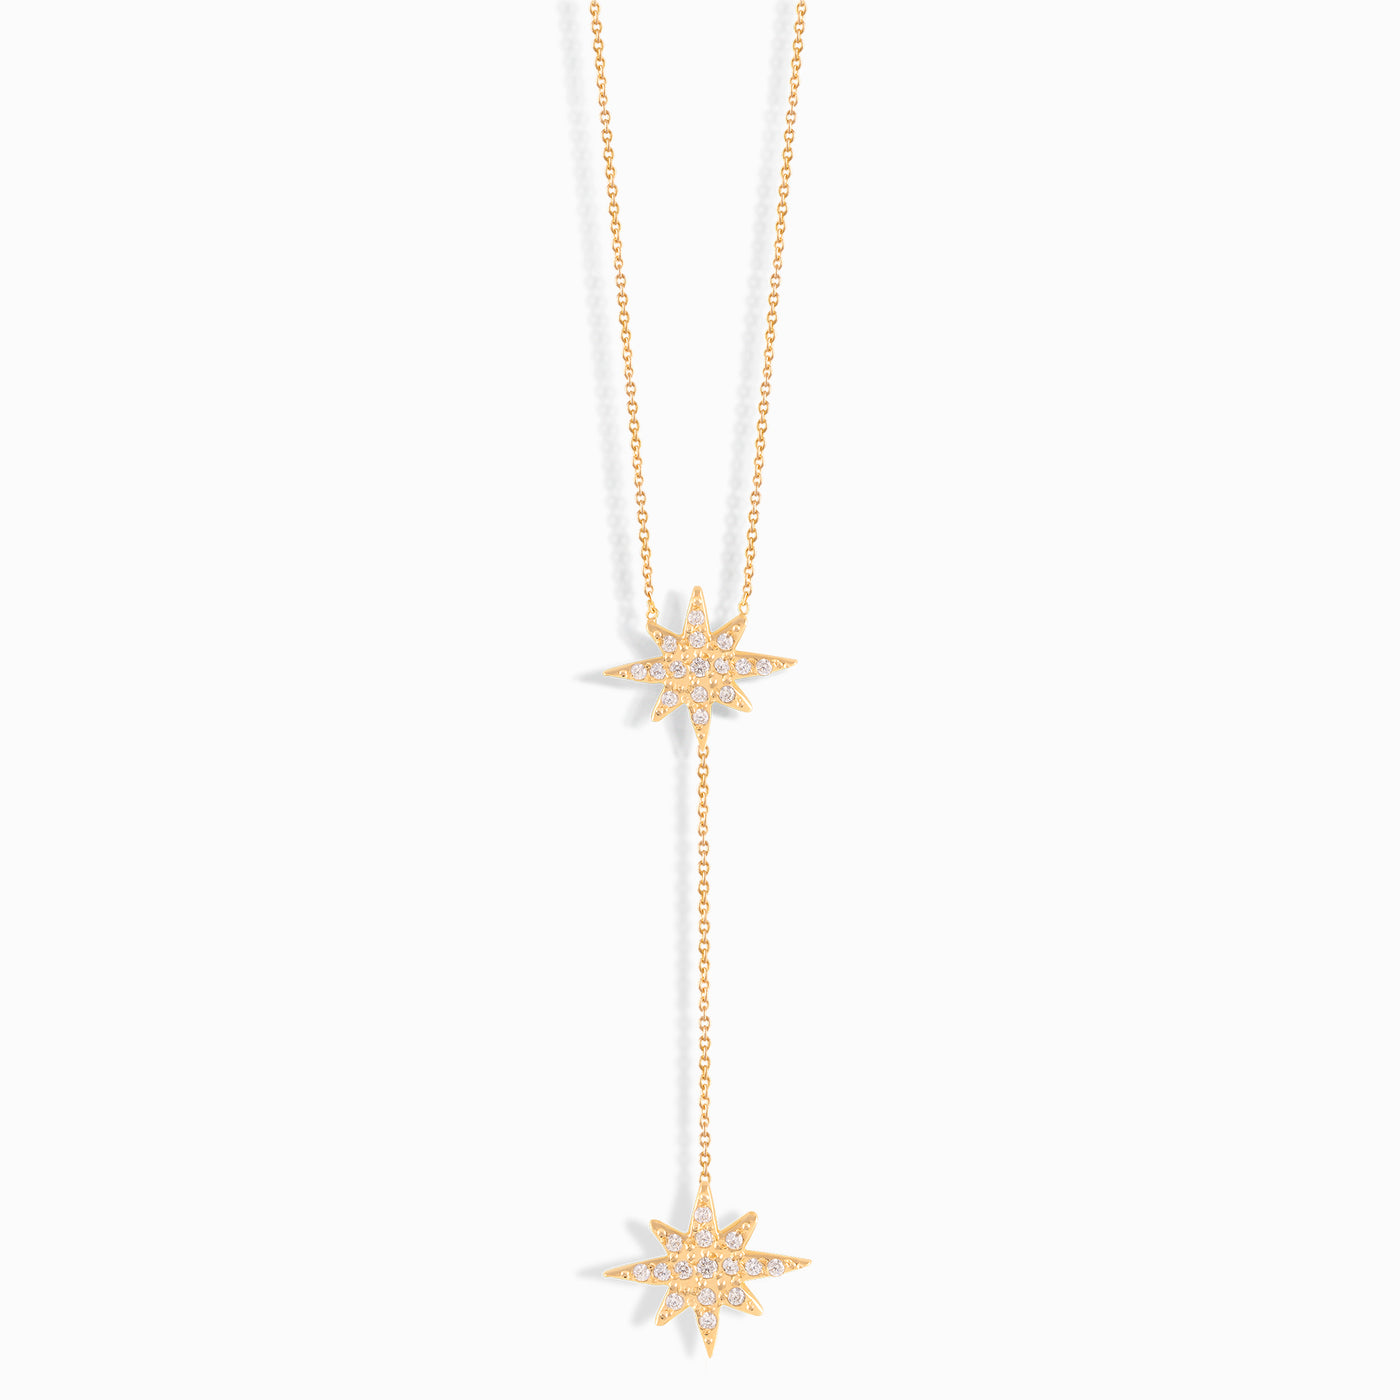 Twinkling Star Y Necklace